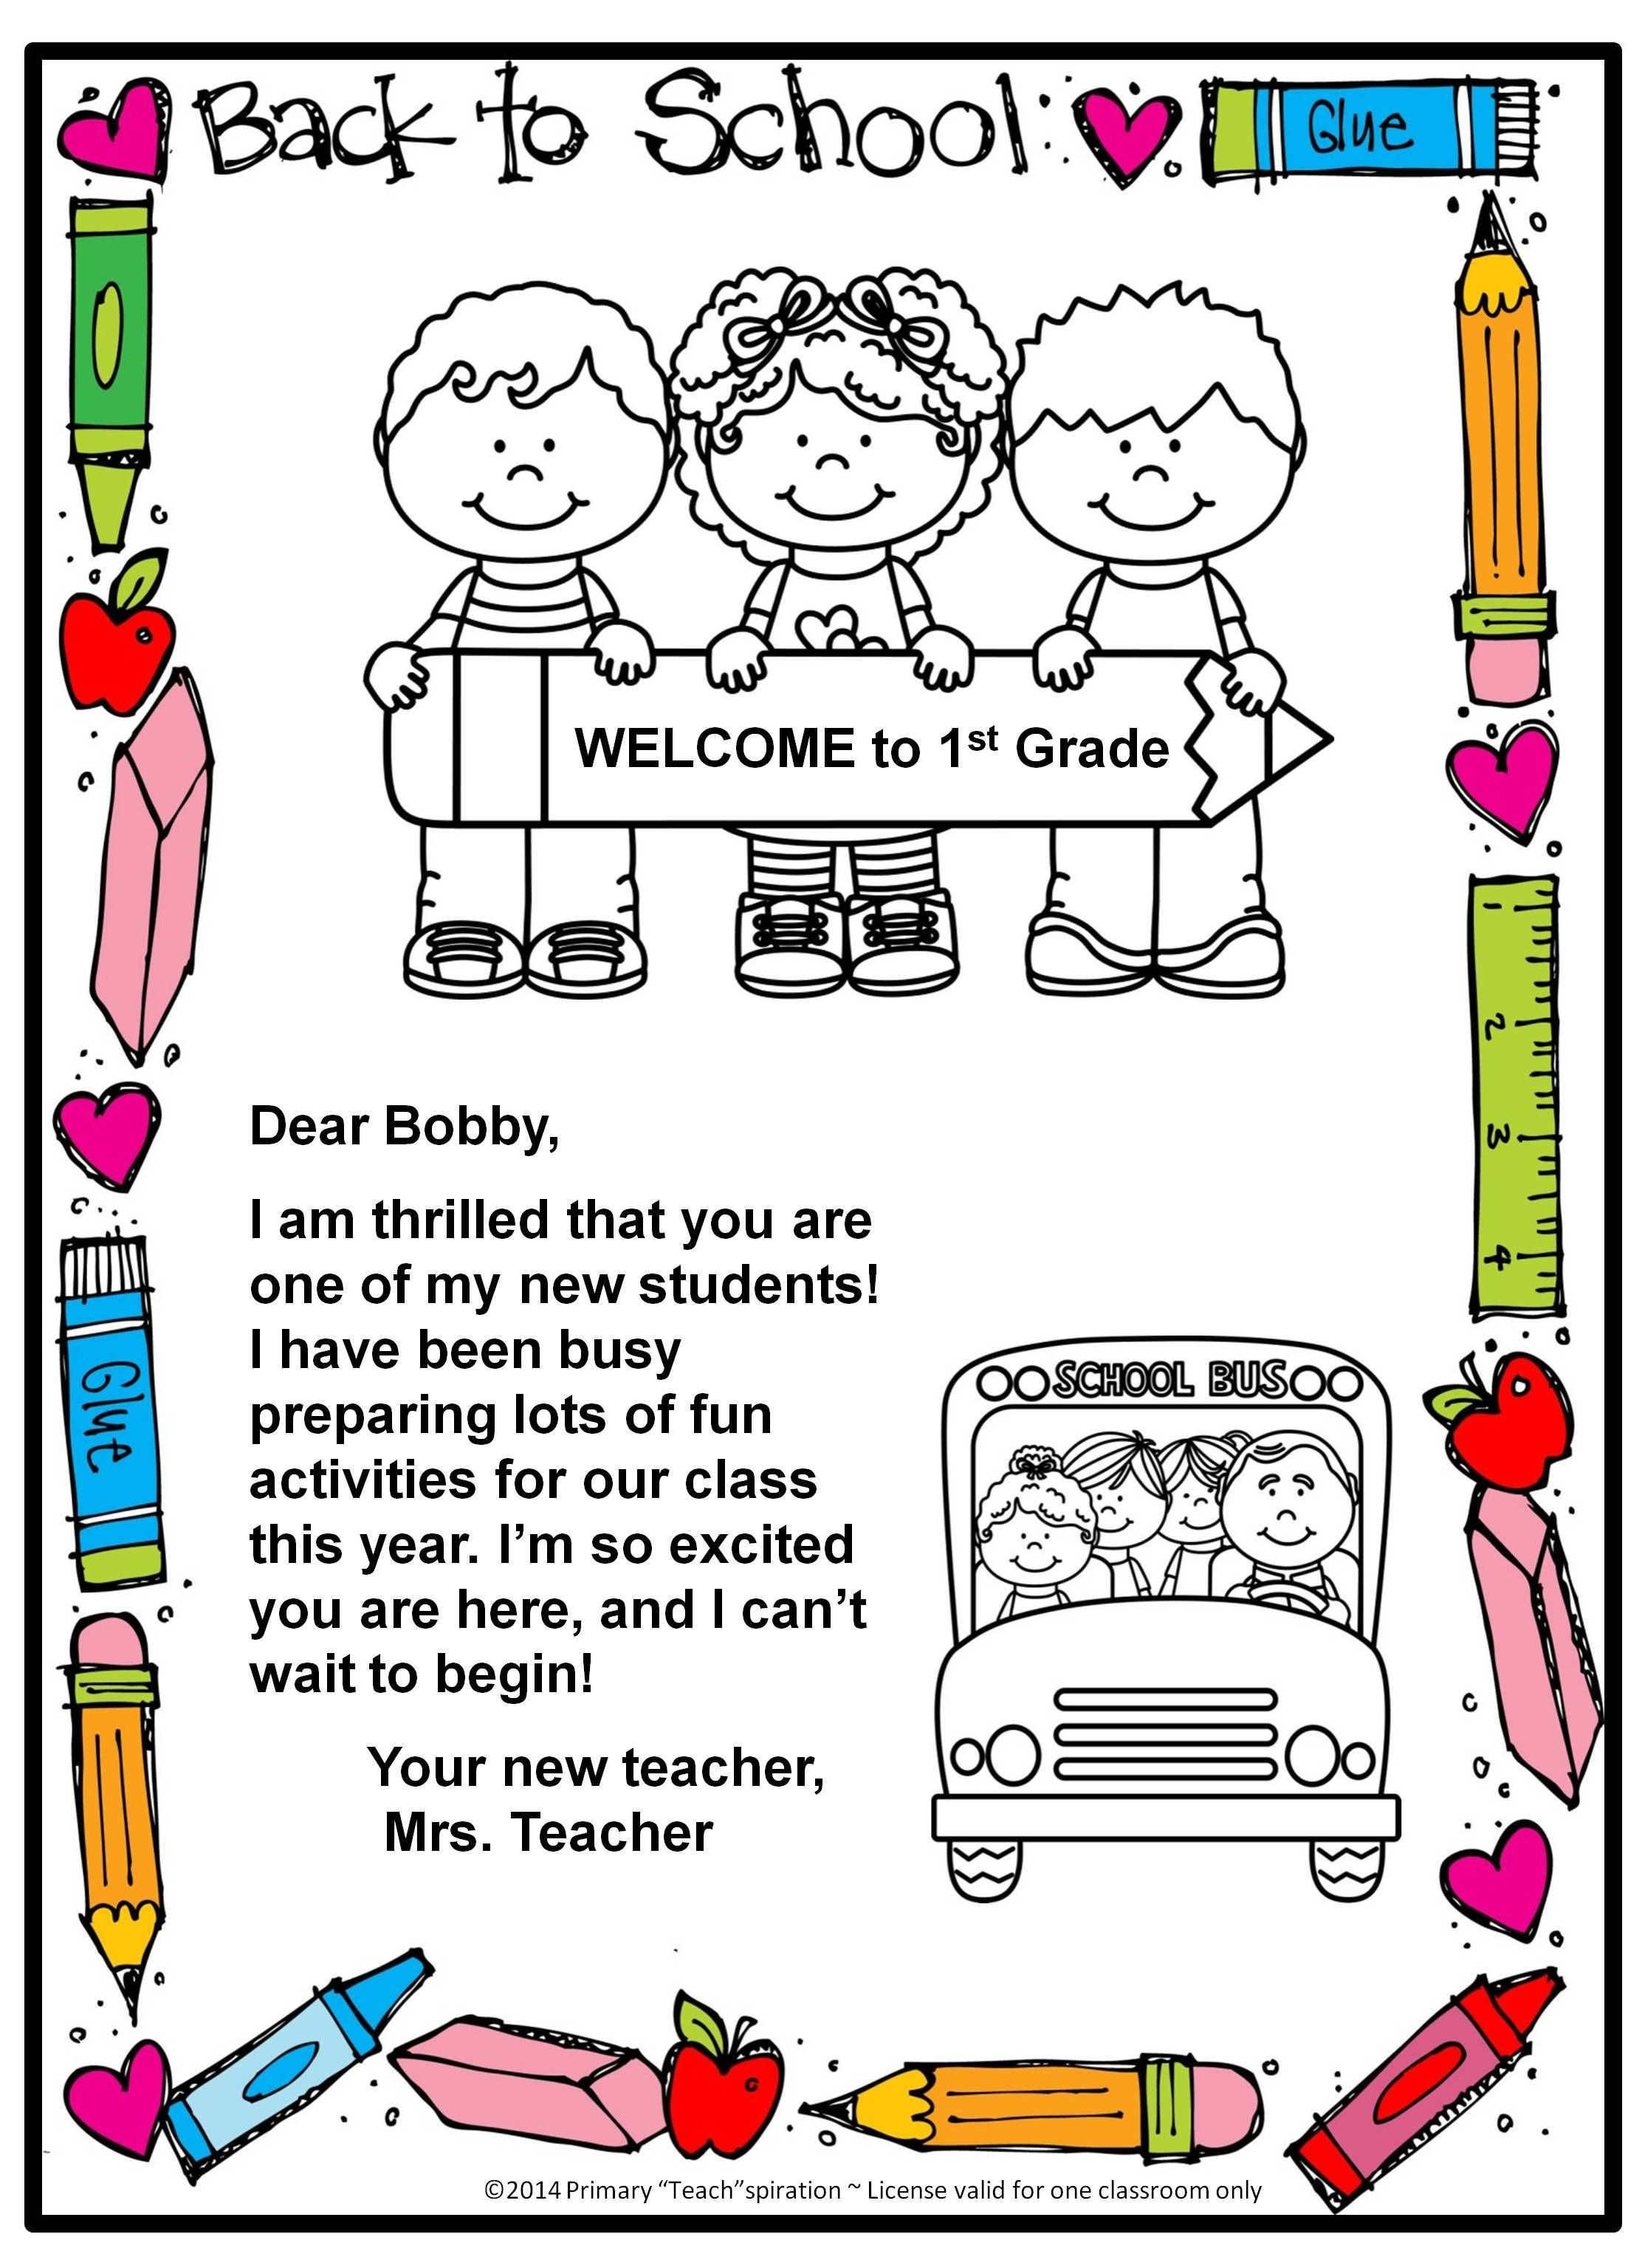 Back To School Welcome Letter And Postcard Editable -6355